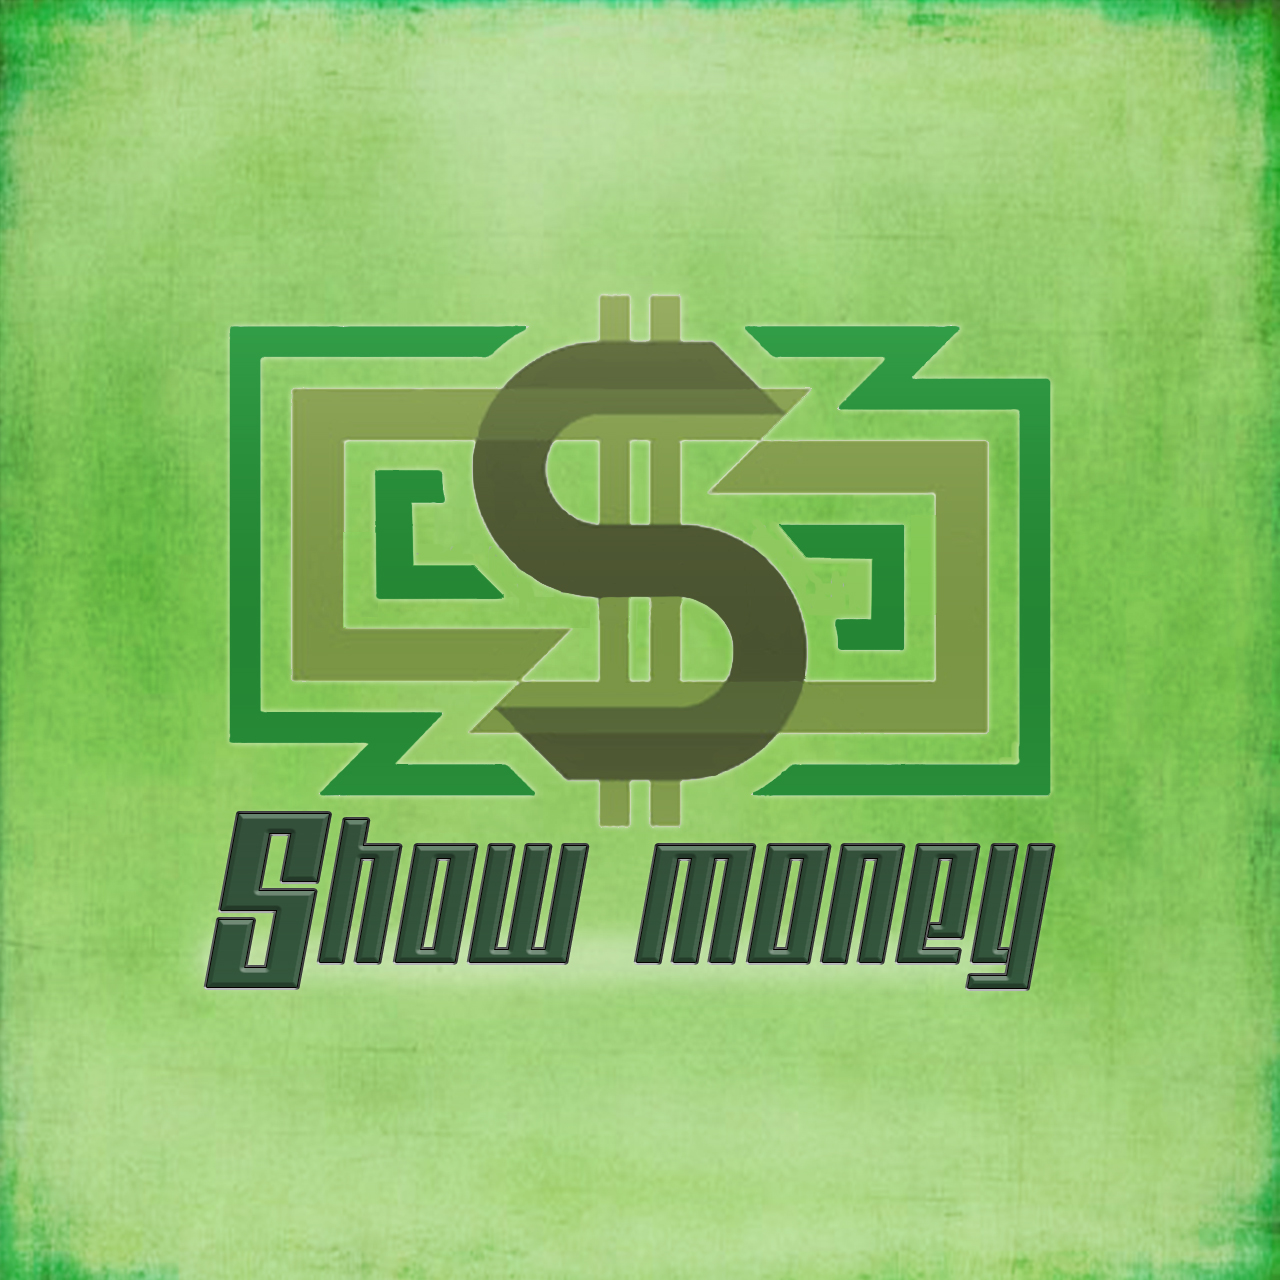 Show Money, MMA Business, UFC Business, UFC Business Podcast, Jason Cruz, Paul Gift, John Nash